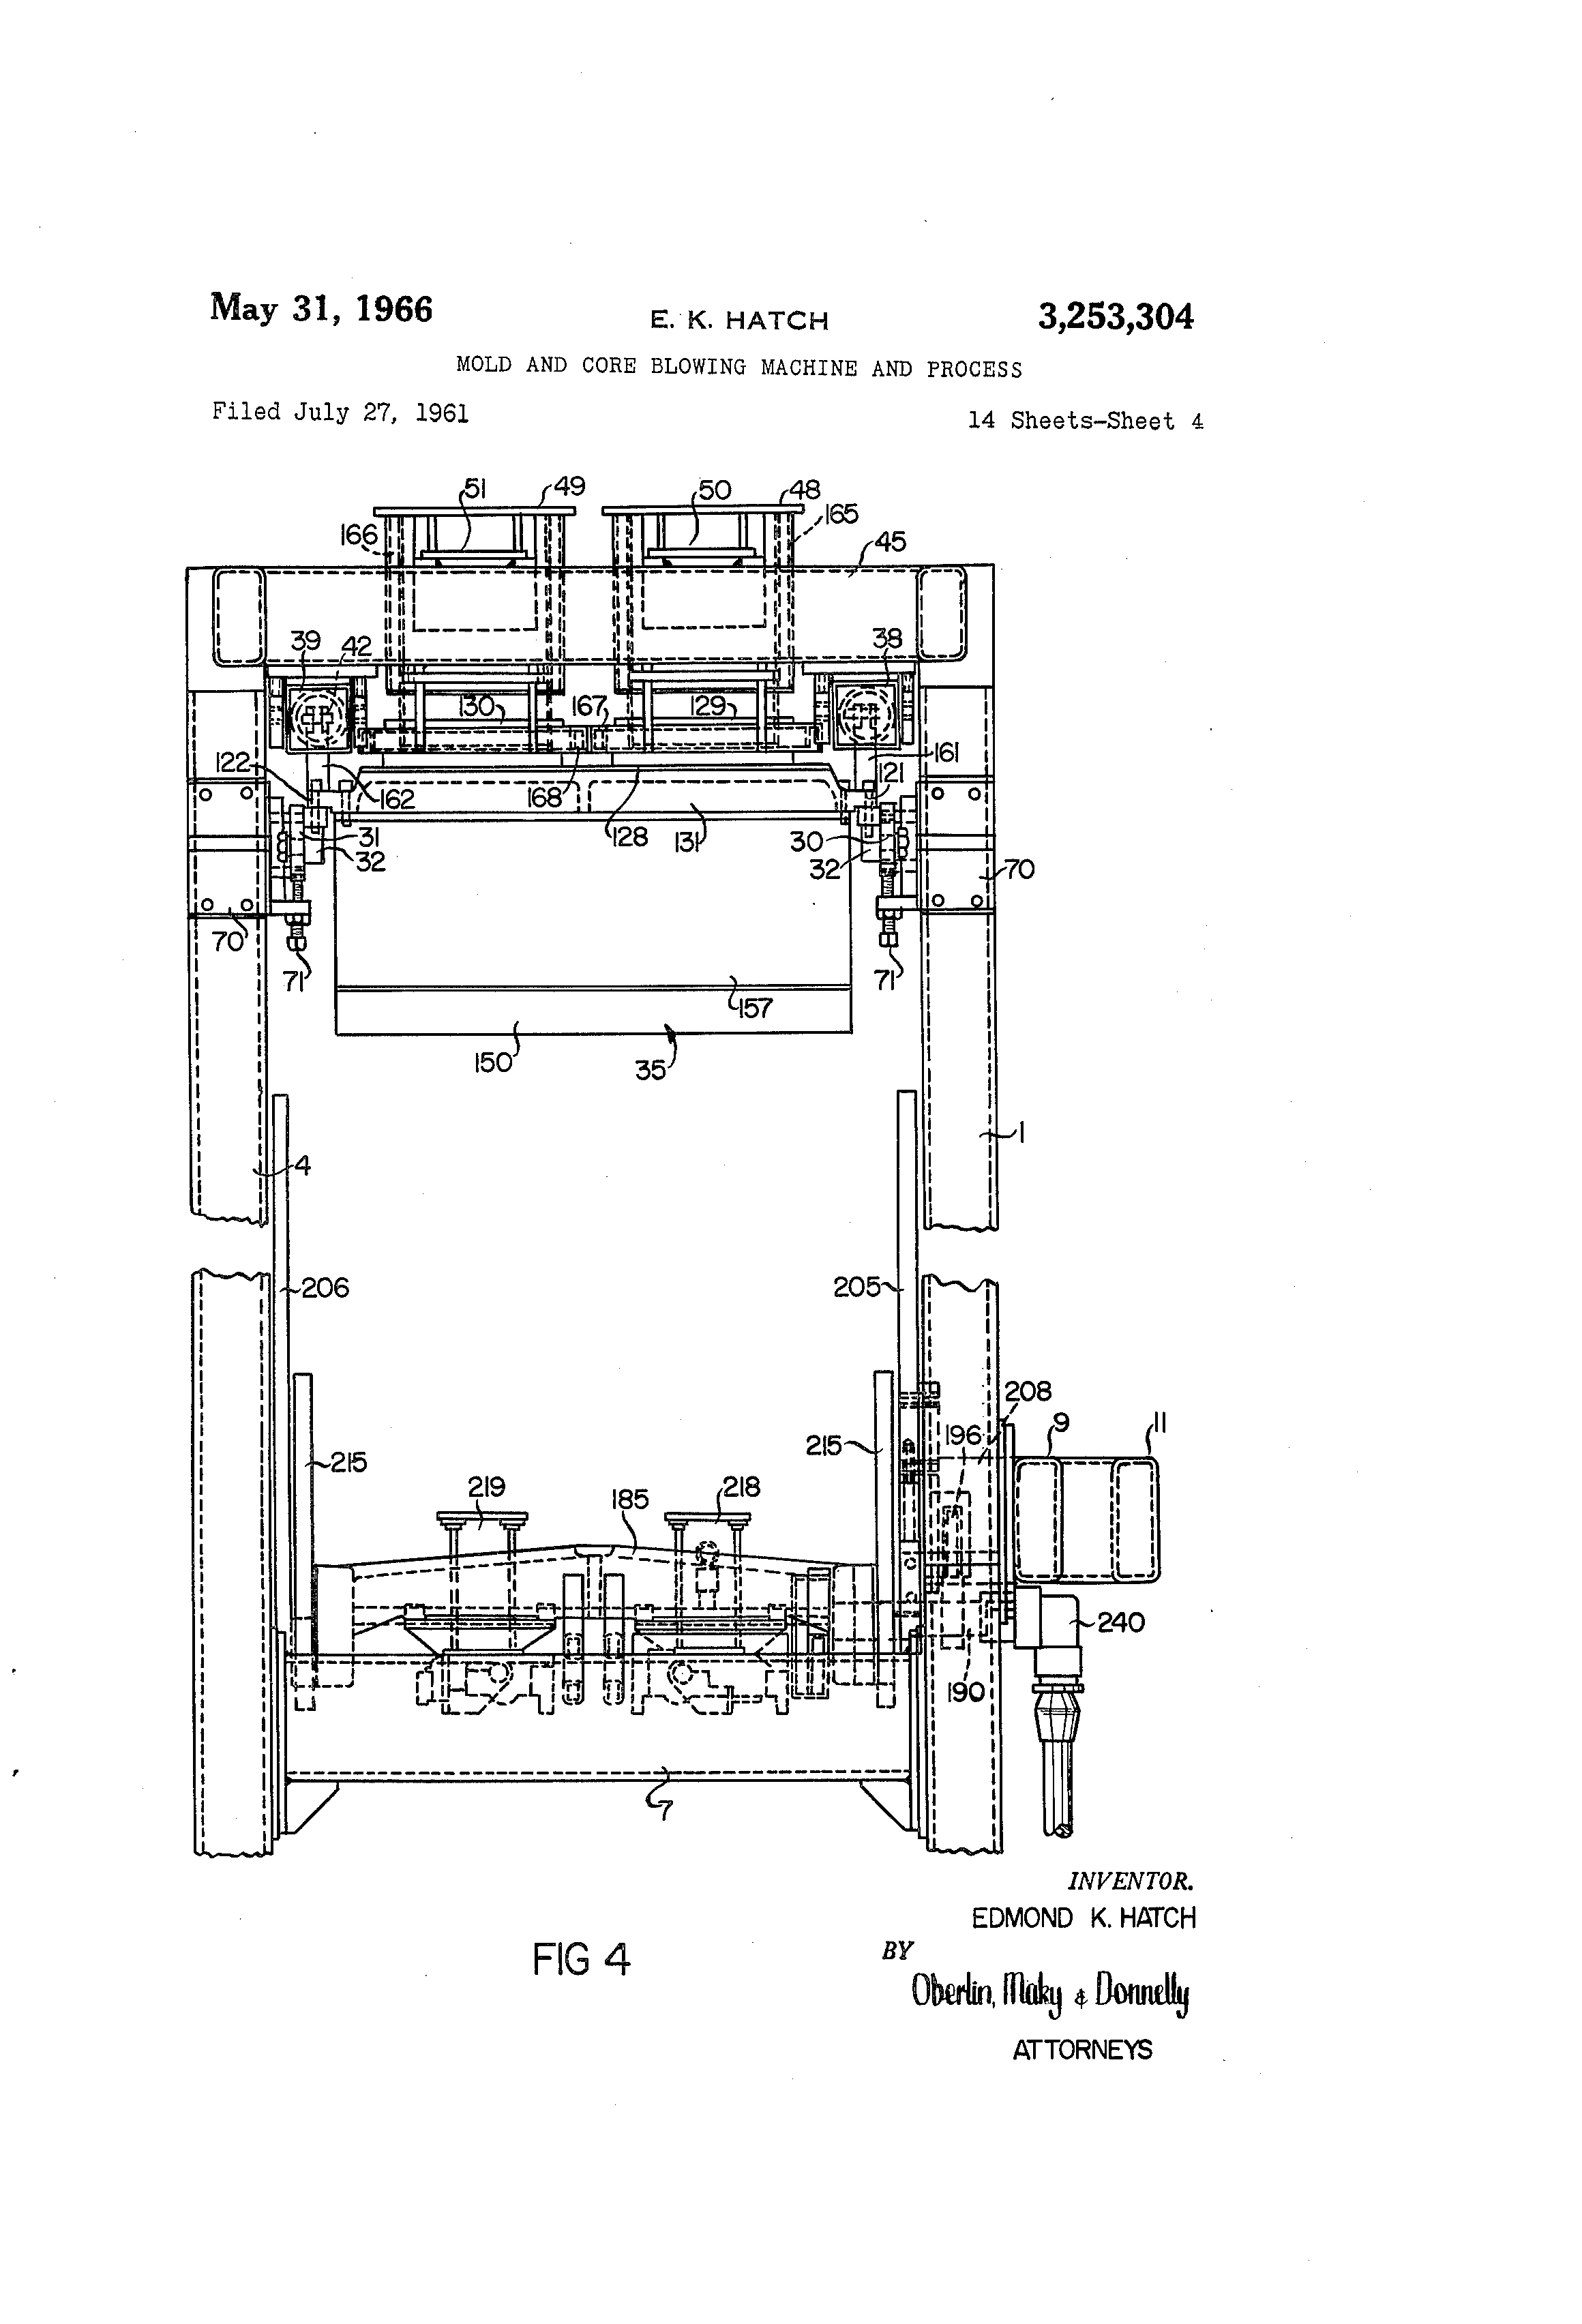 US3253304 3 patent us3253304 mold and core blowing machine and process  at bakdesigns.co